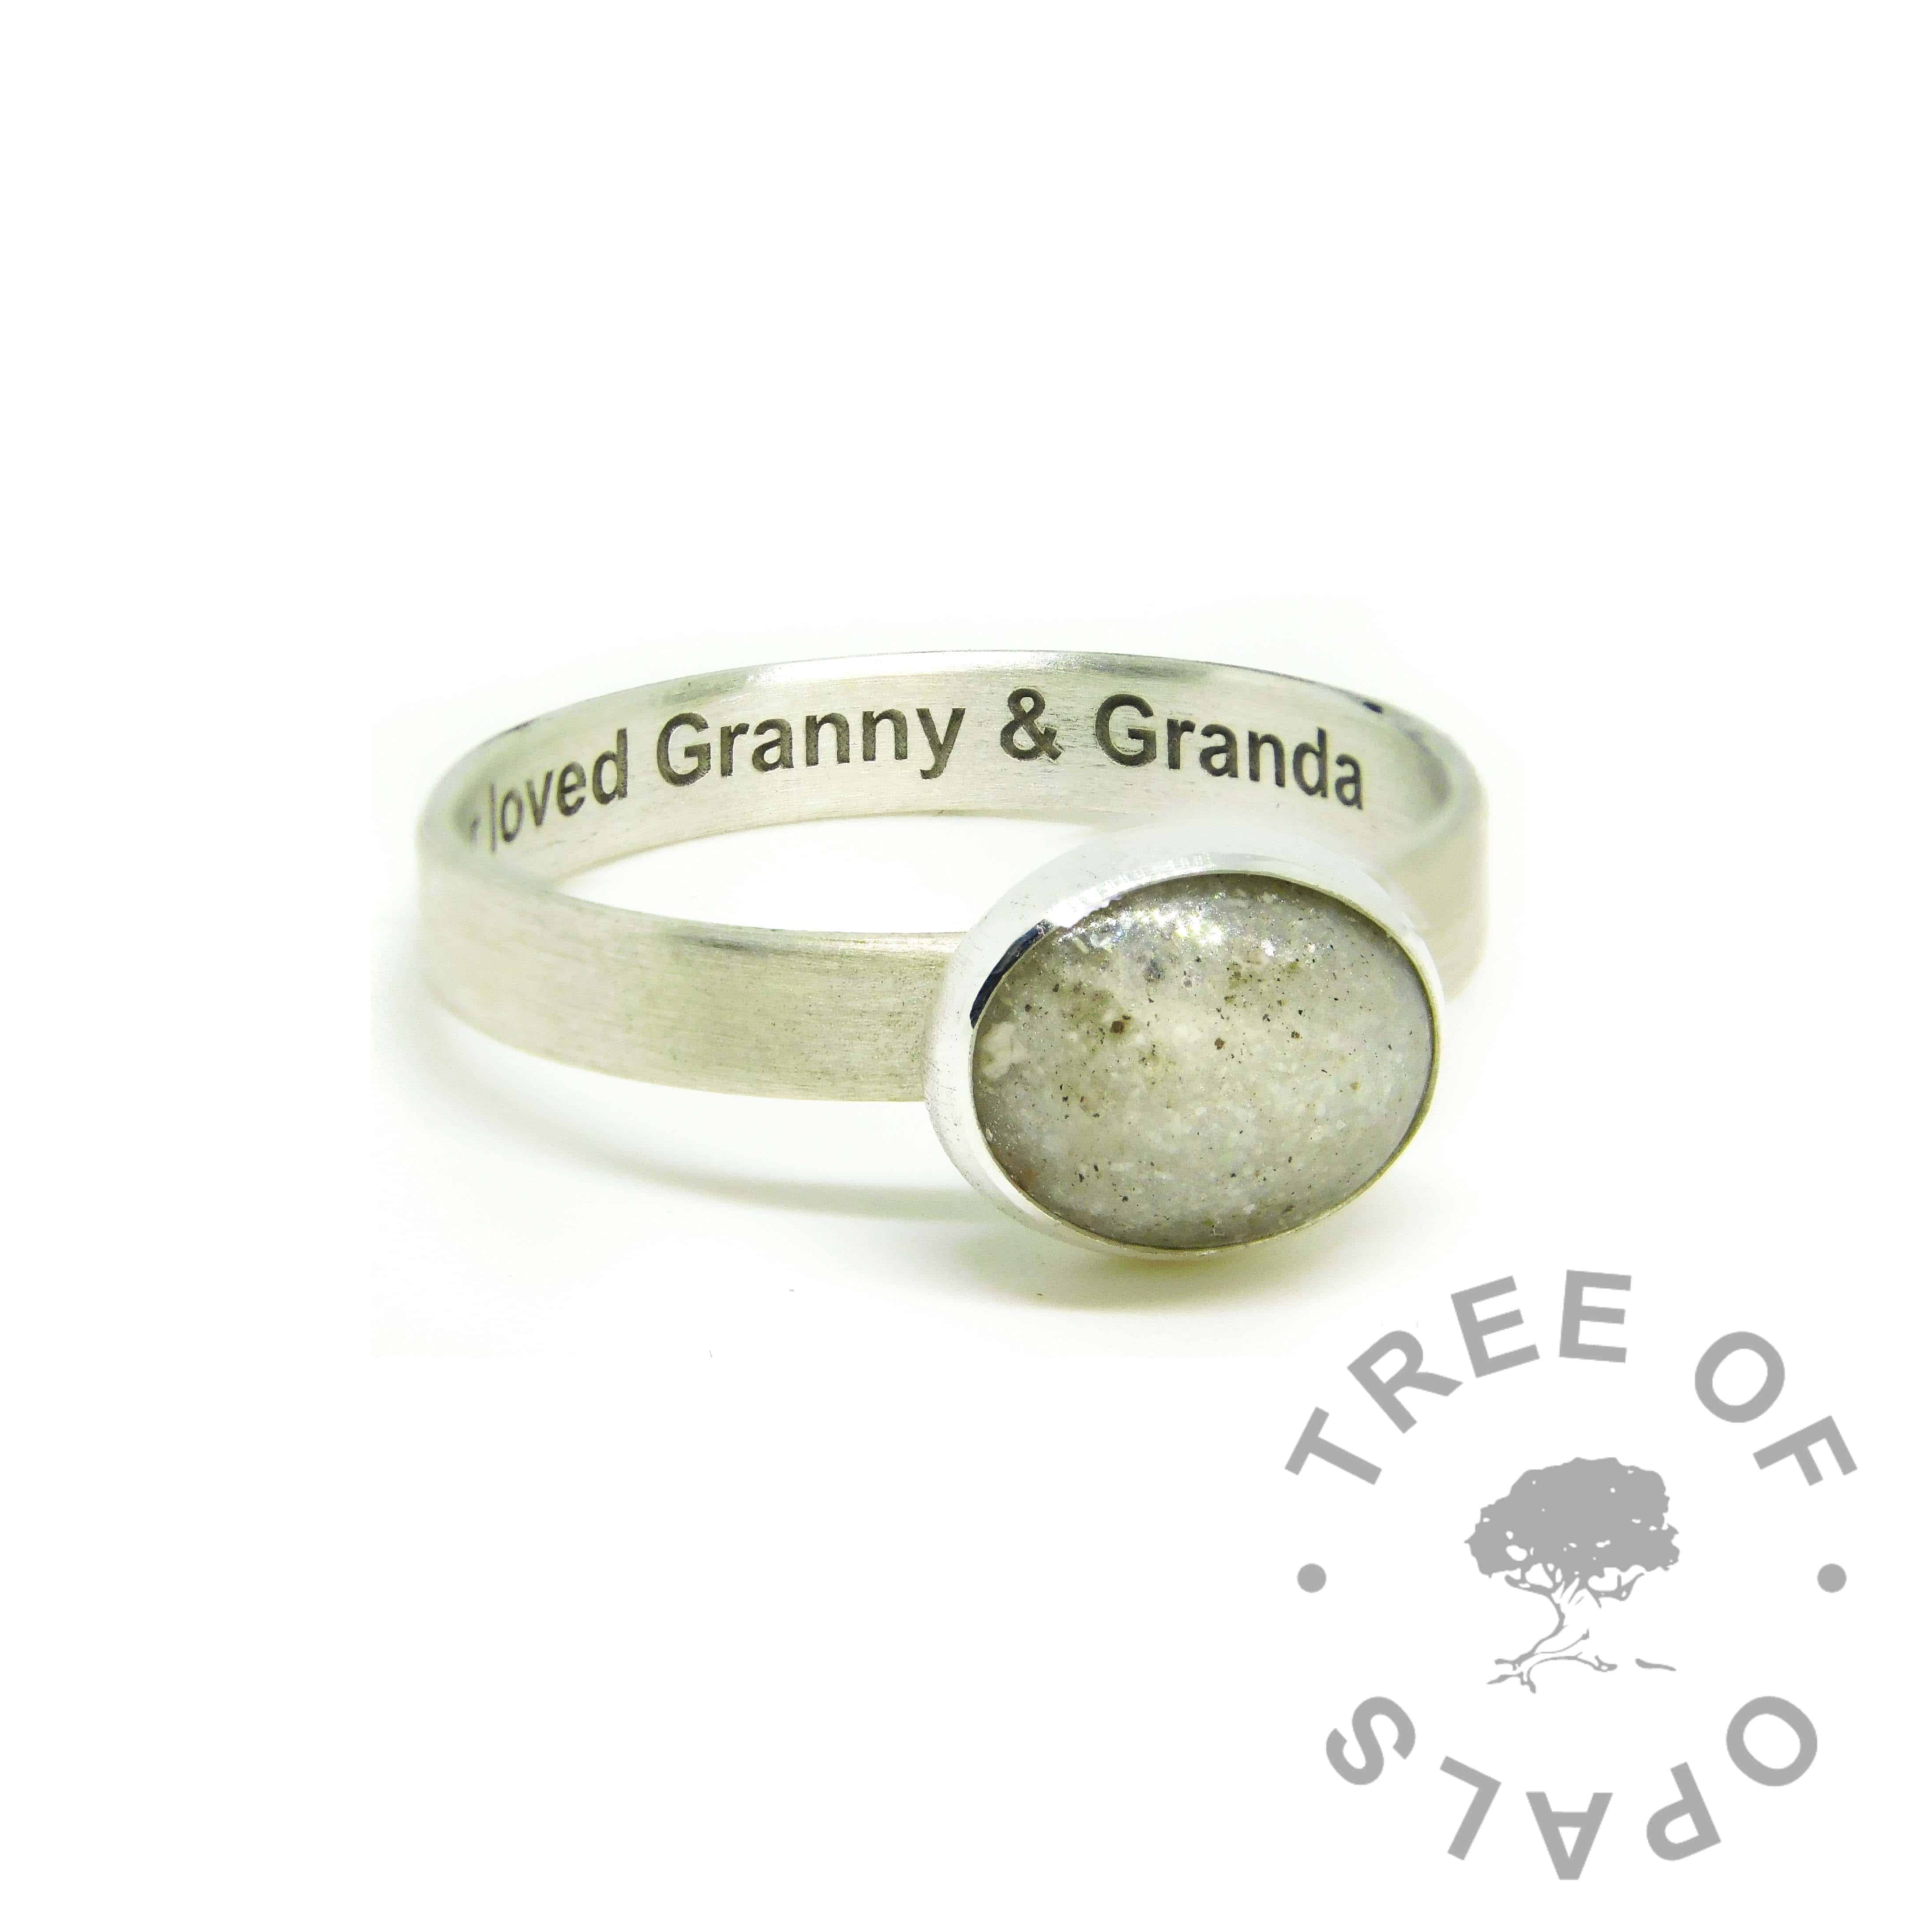 white ashes ring, cremation ashes ring on brushed band. Unicorn white resin sparkle mix, naturally light ashes. Engraved inside in Arial font